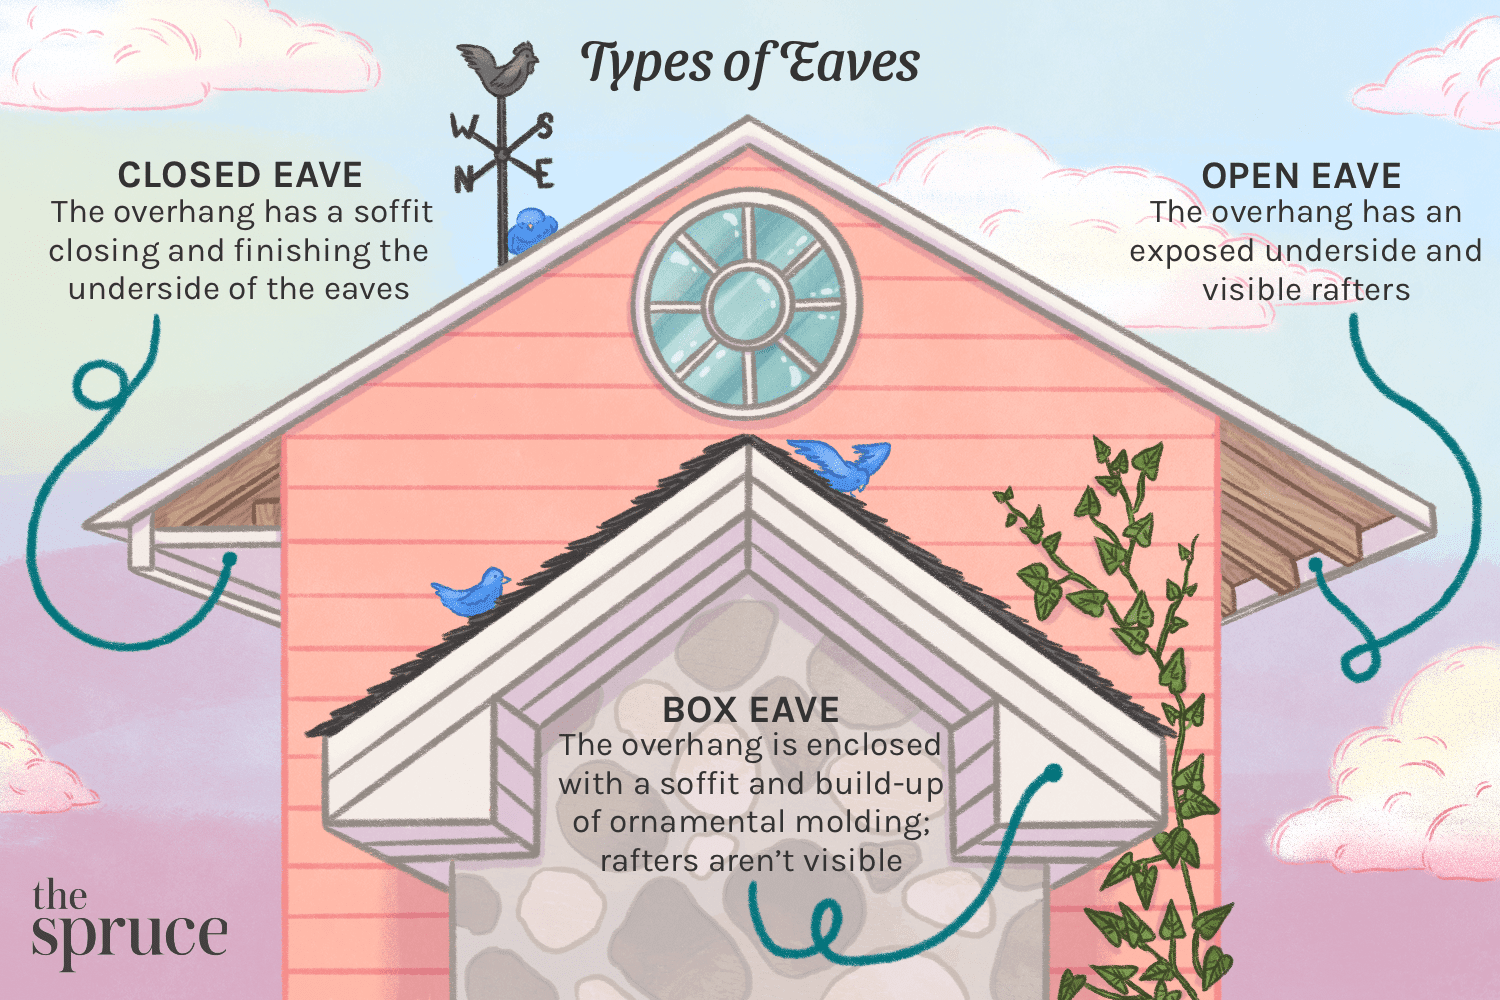 Types of Eaves